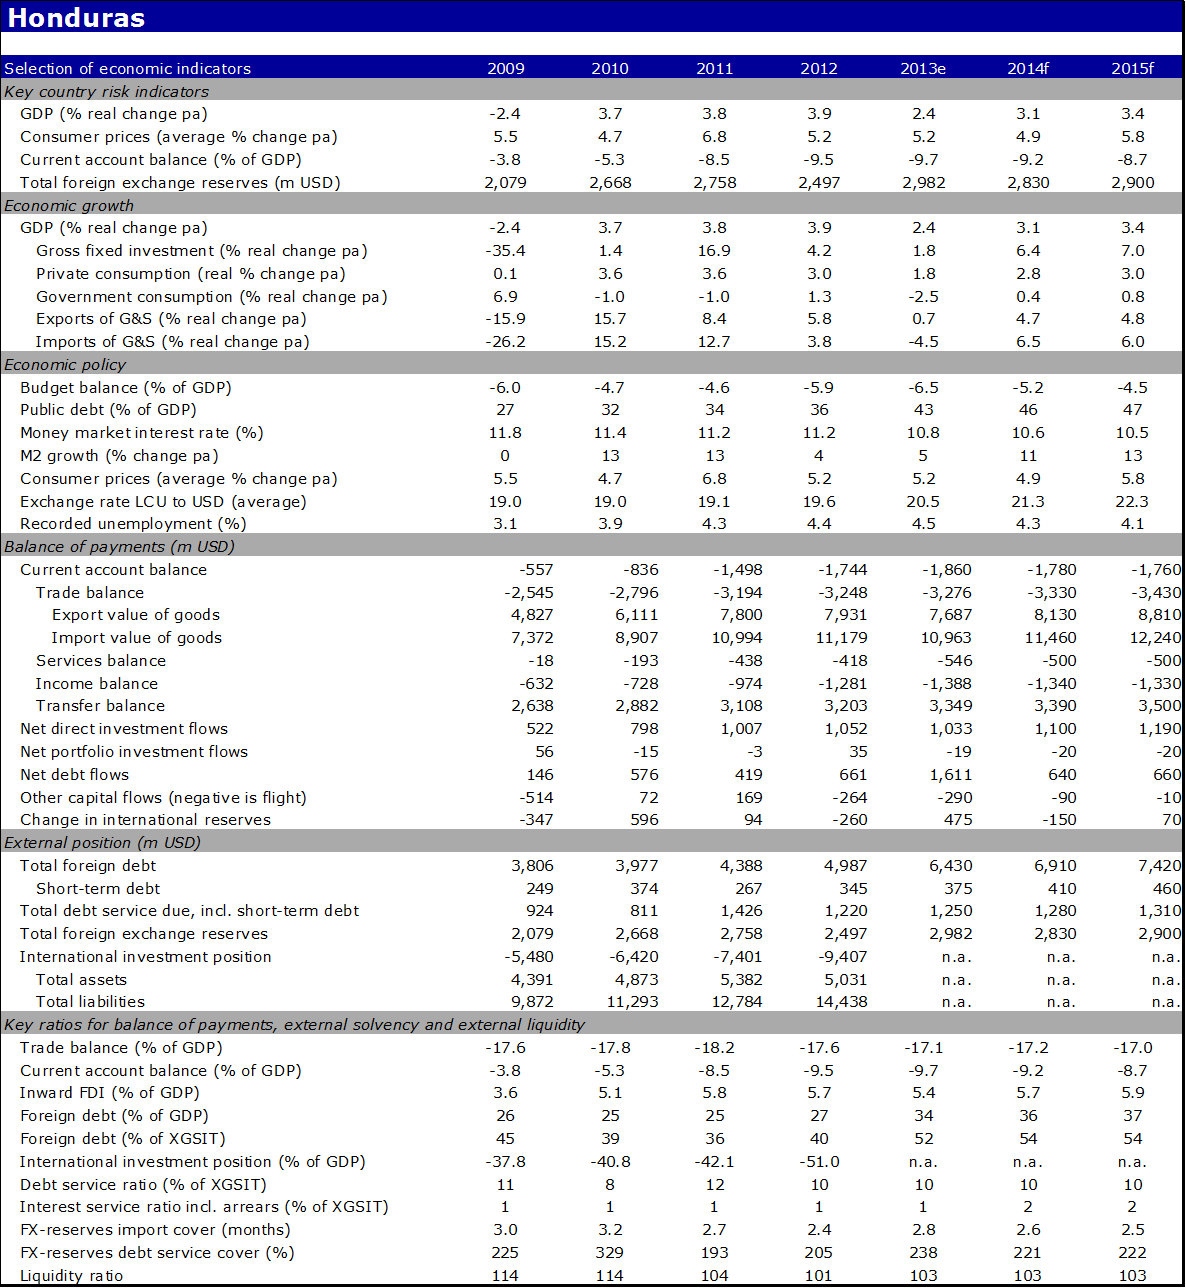 Economic indicators of Honduras